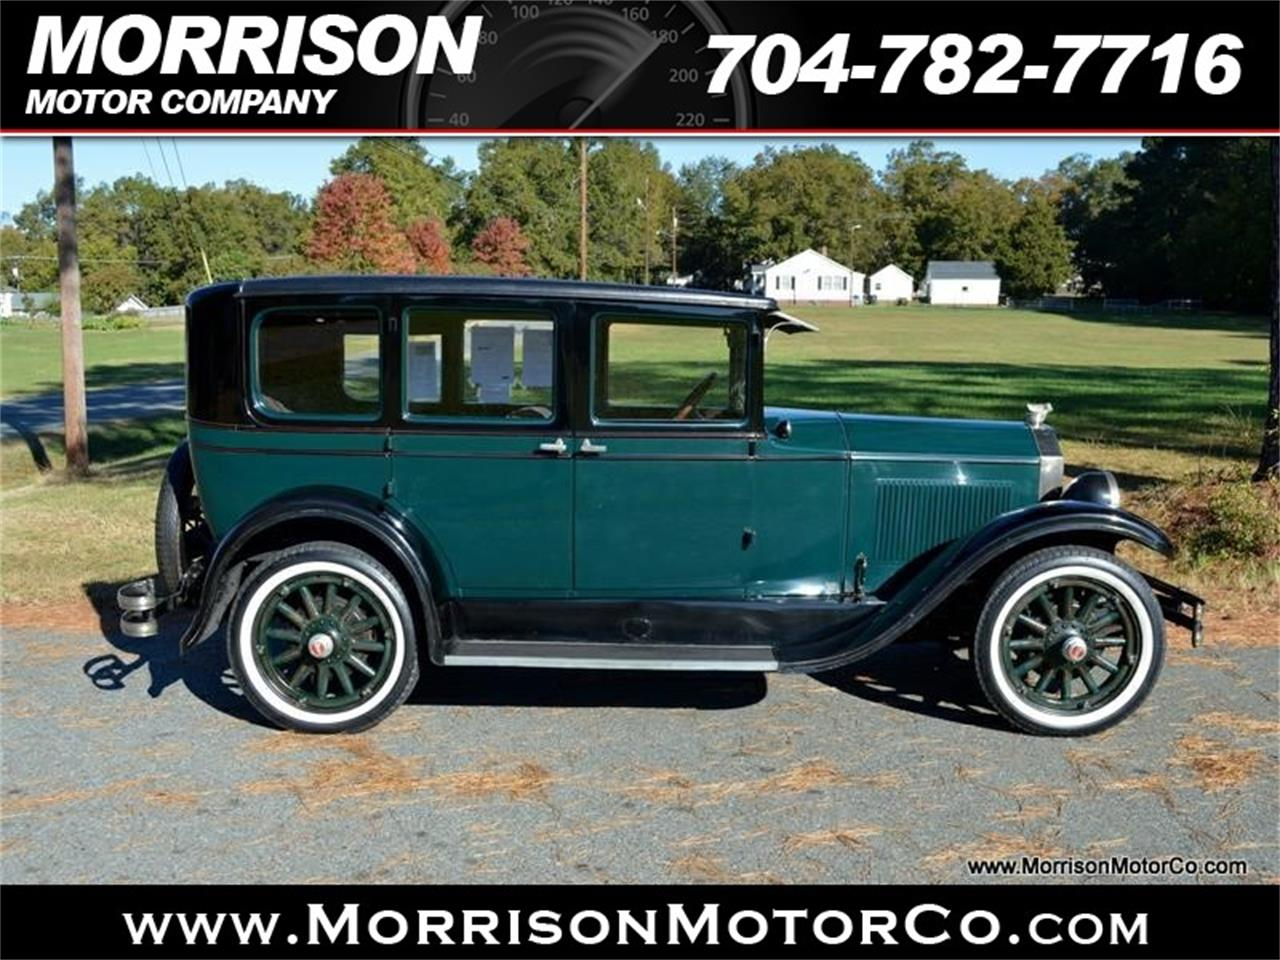 Large Picture of 1928 Buick 2-Dr Coupe located in Concord North Carolina - $25,900.00 - KX2C